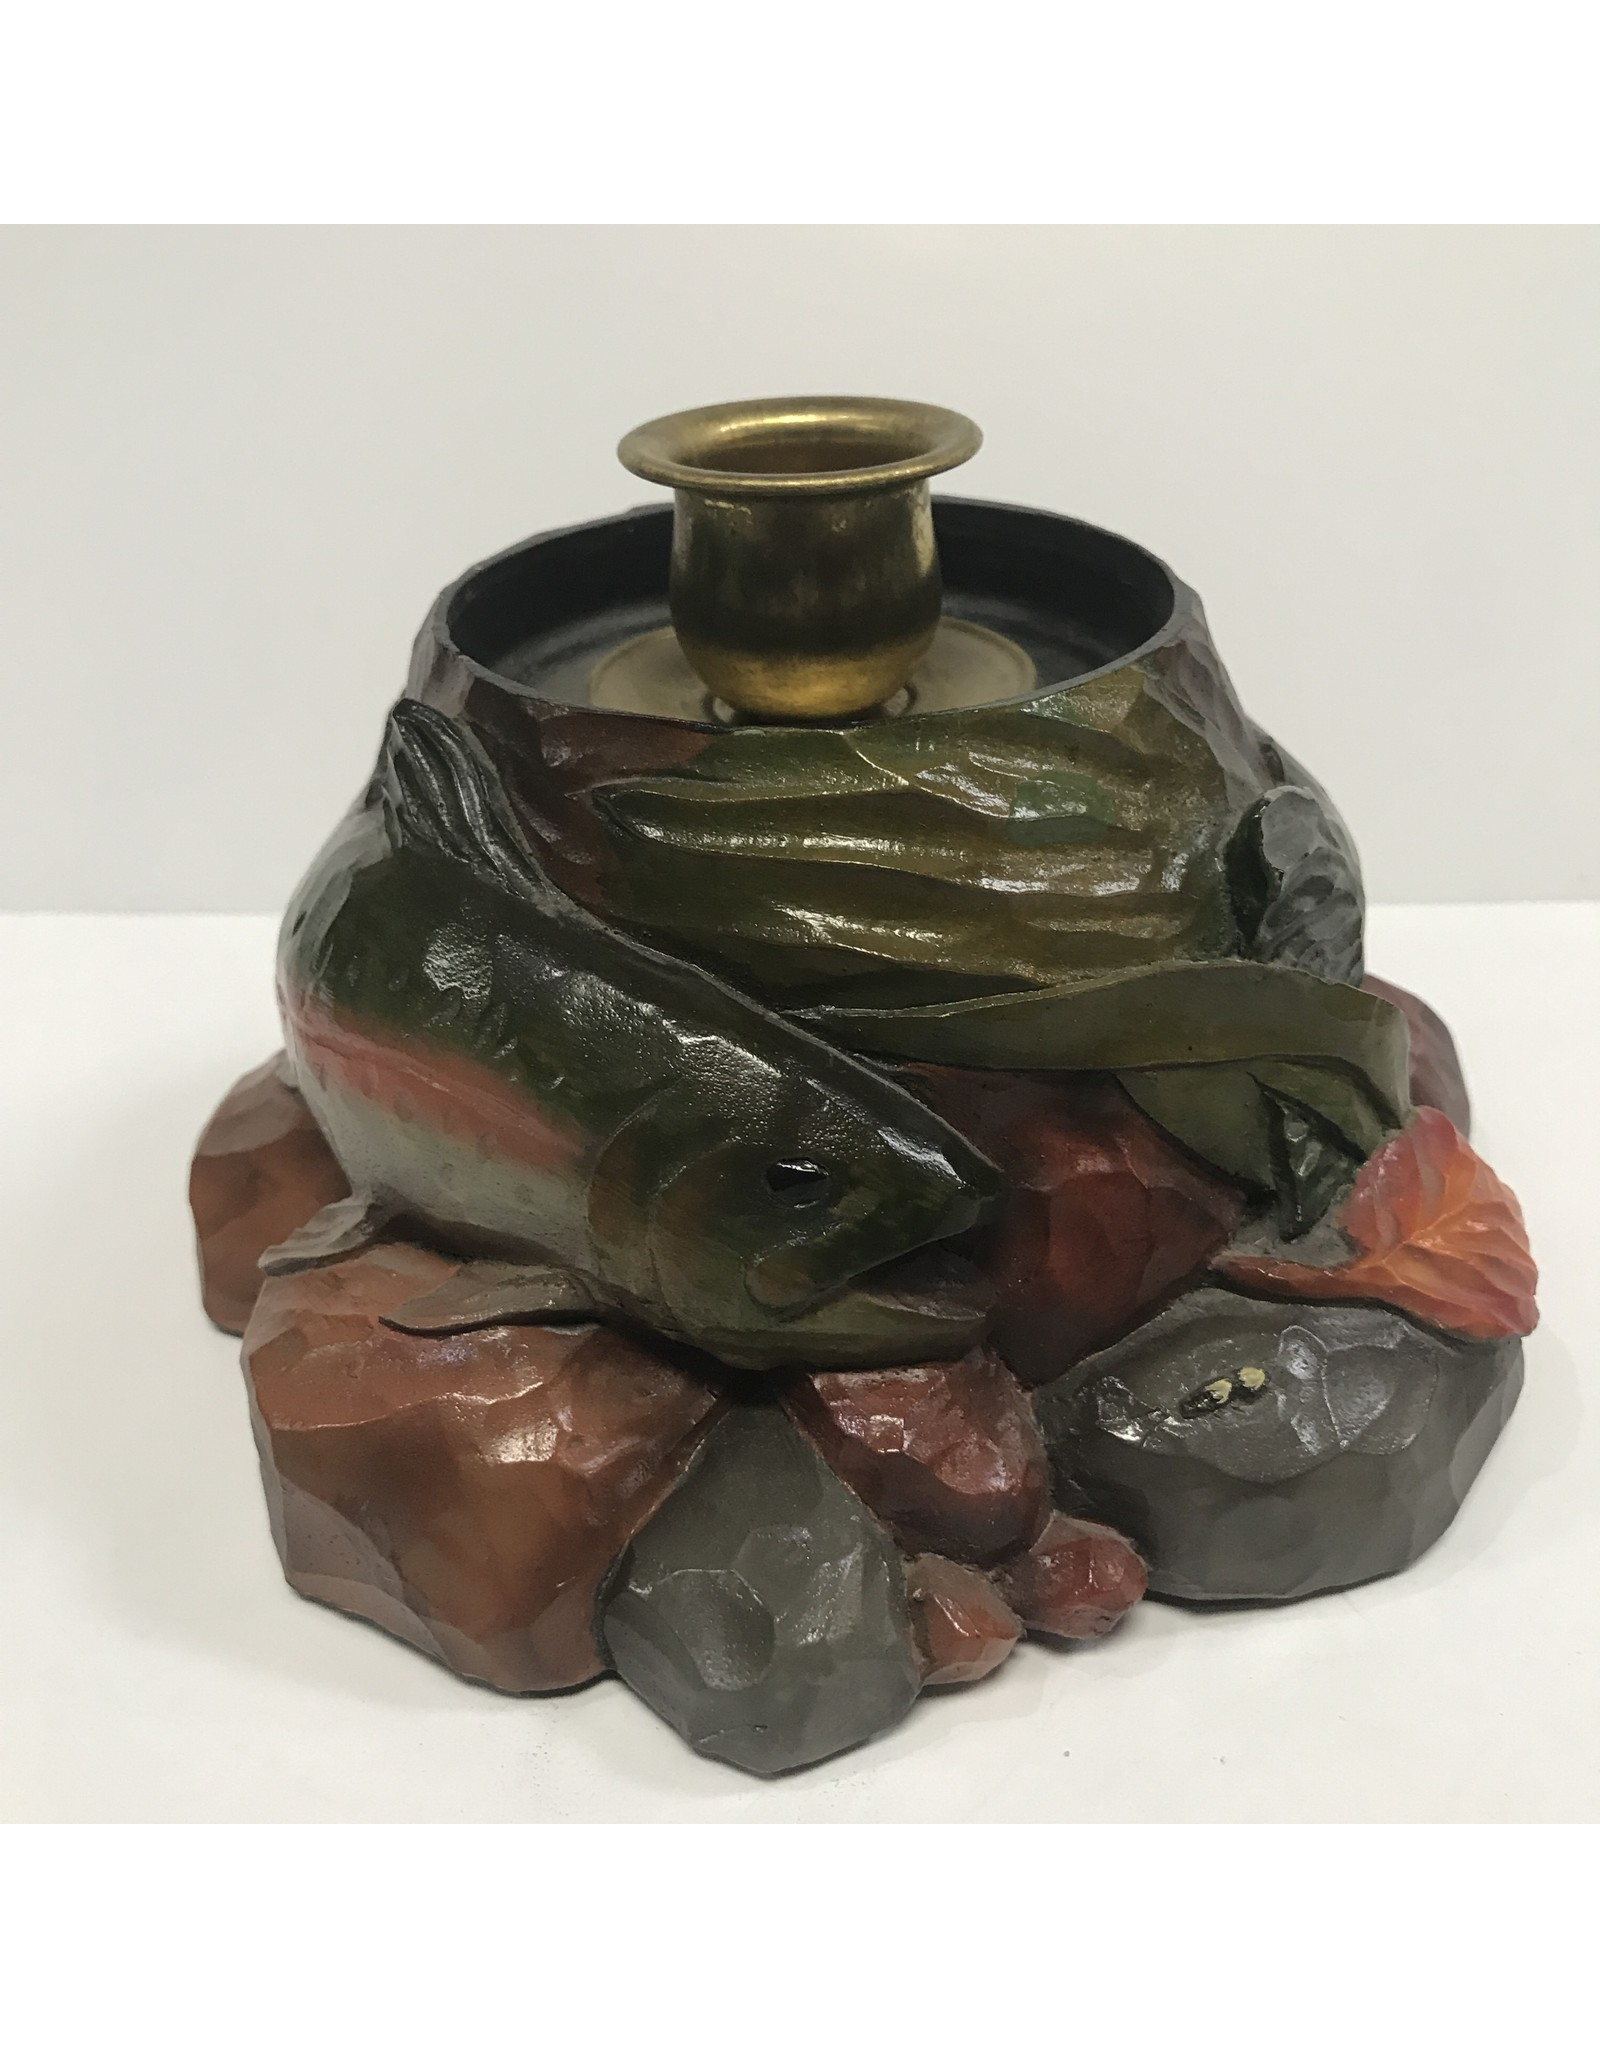 Mountain Anlger Trout Candlestick Holder